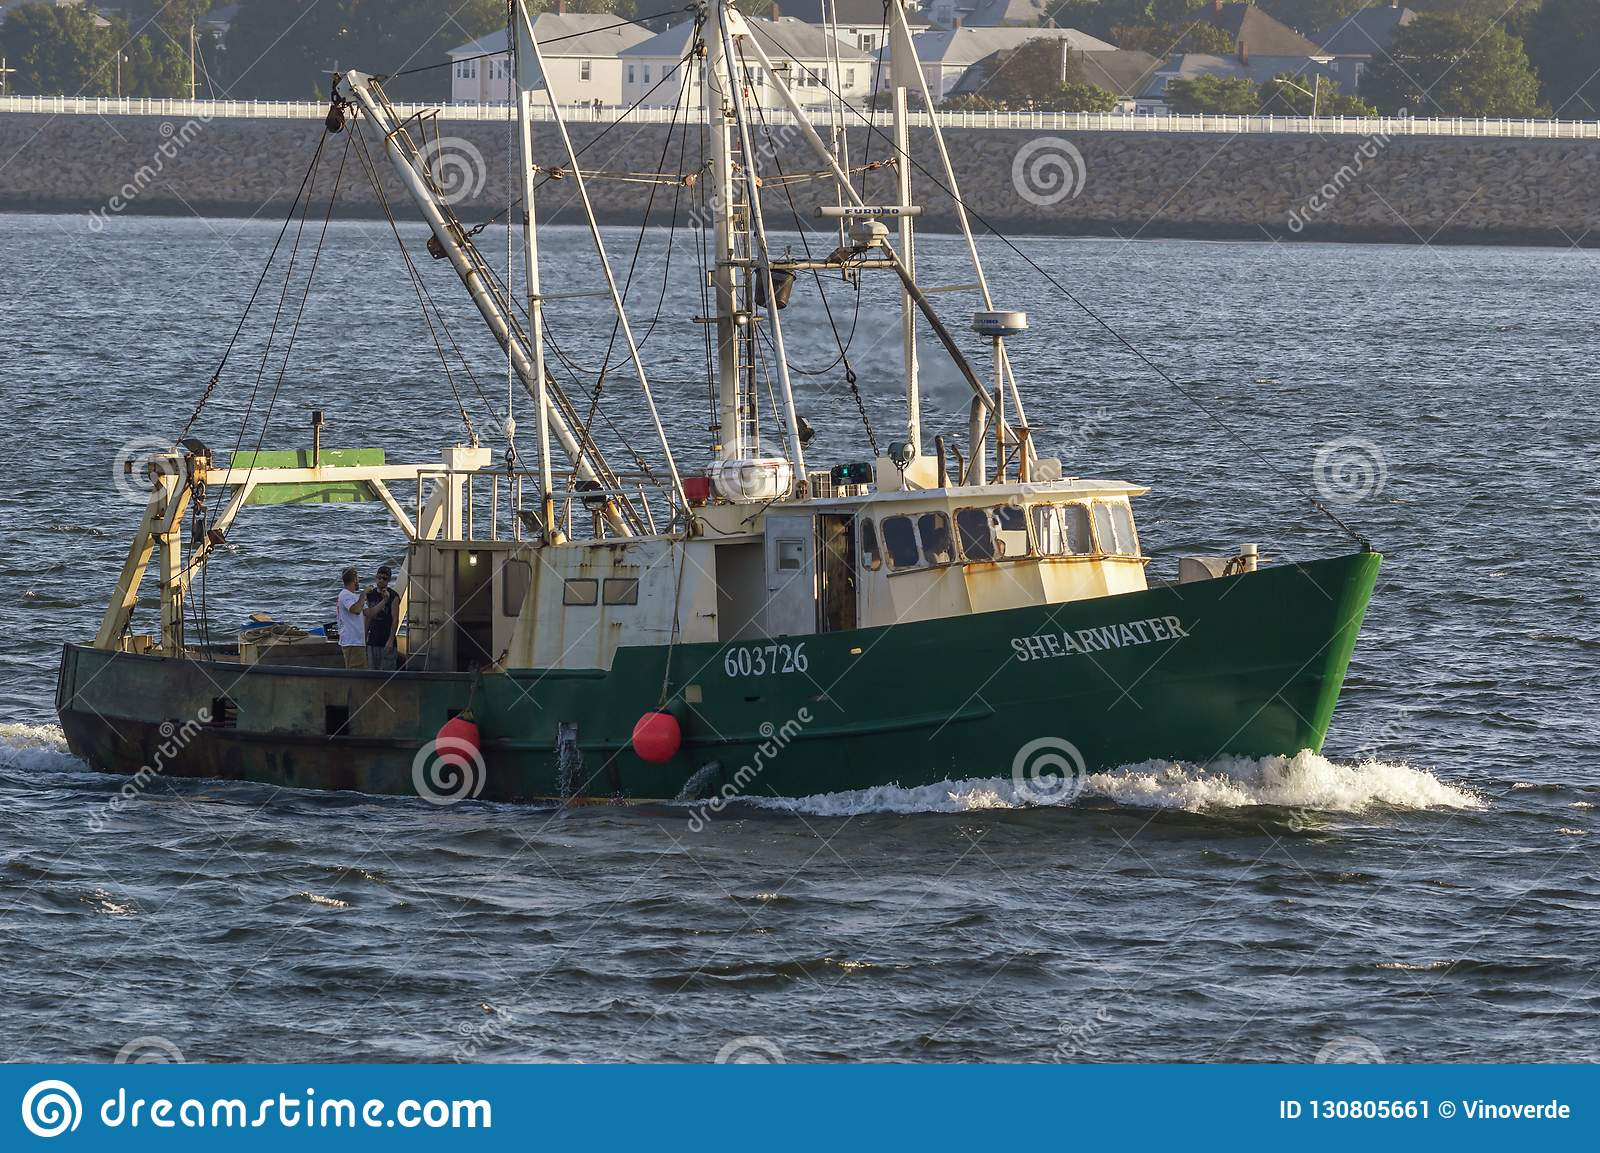 Commercial Fishing Vessel Shearwater Approaching New Bedford